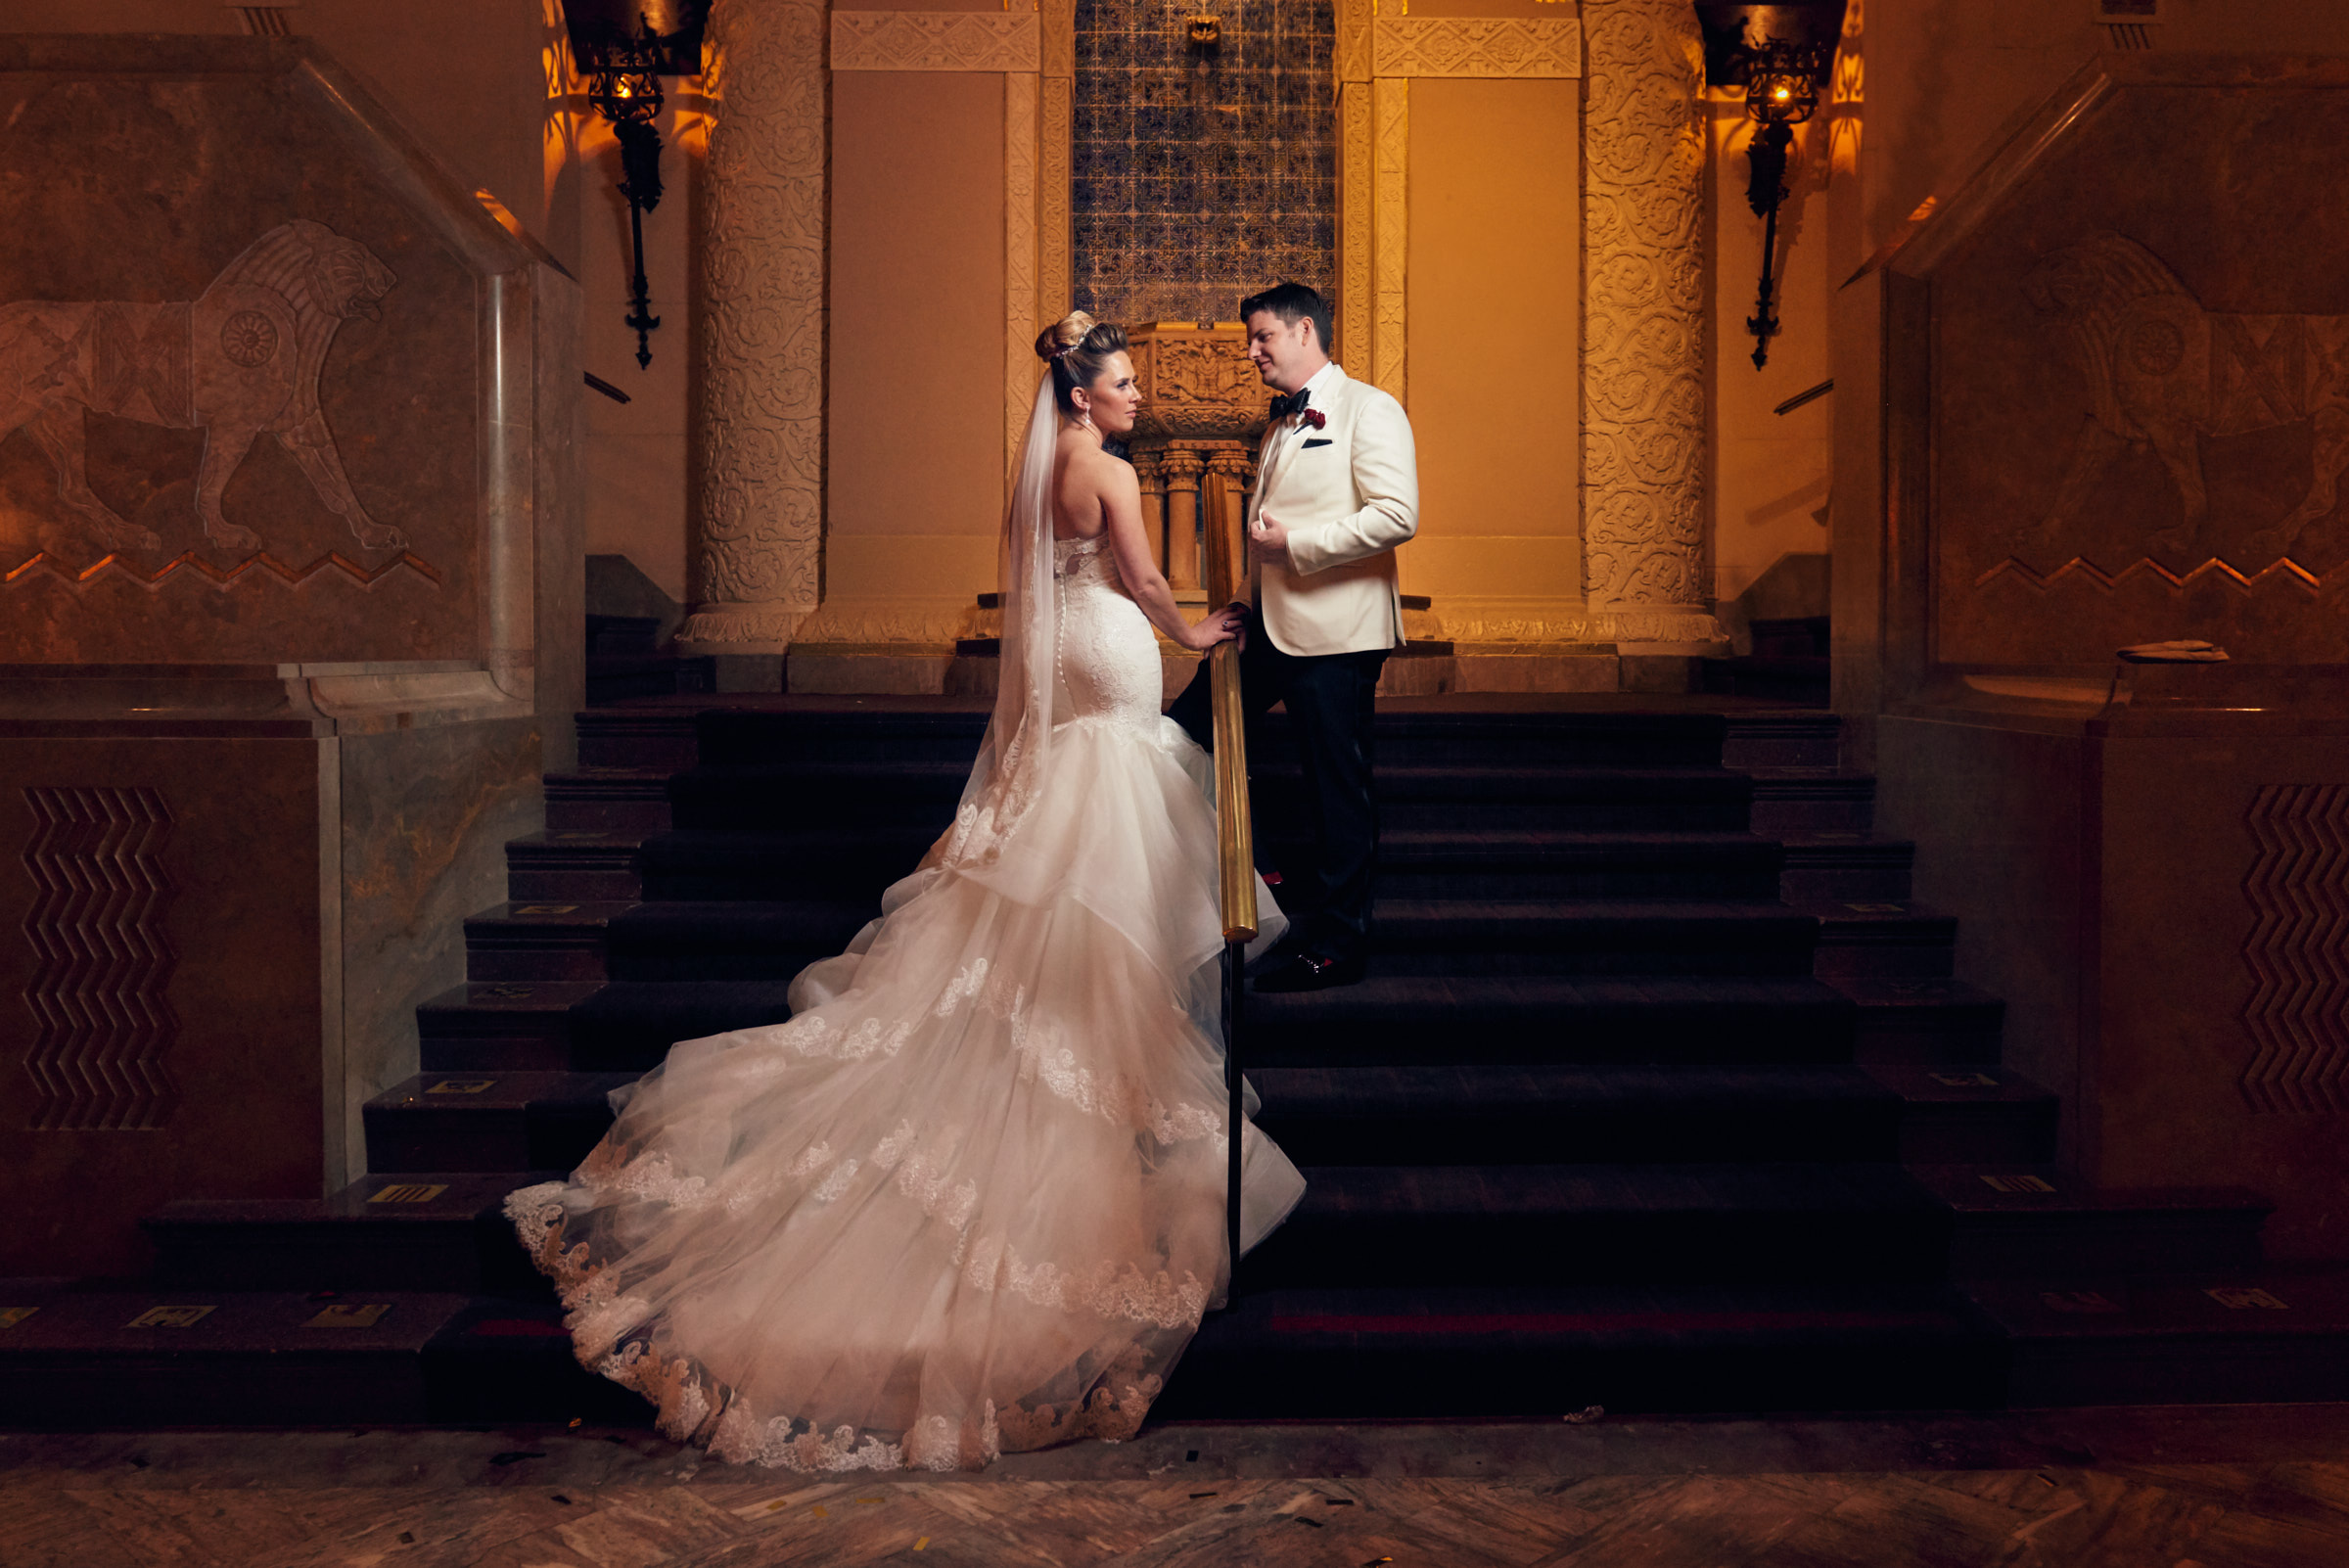 Bride and groom wedding portrait at Lions Hall